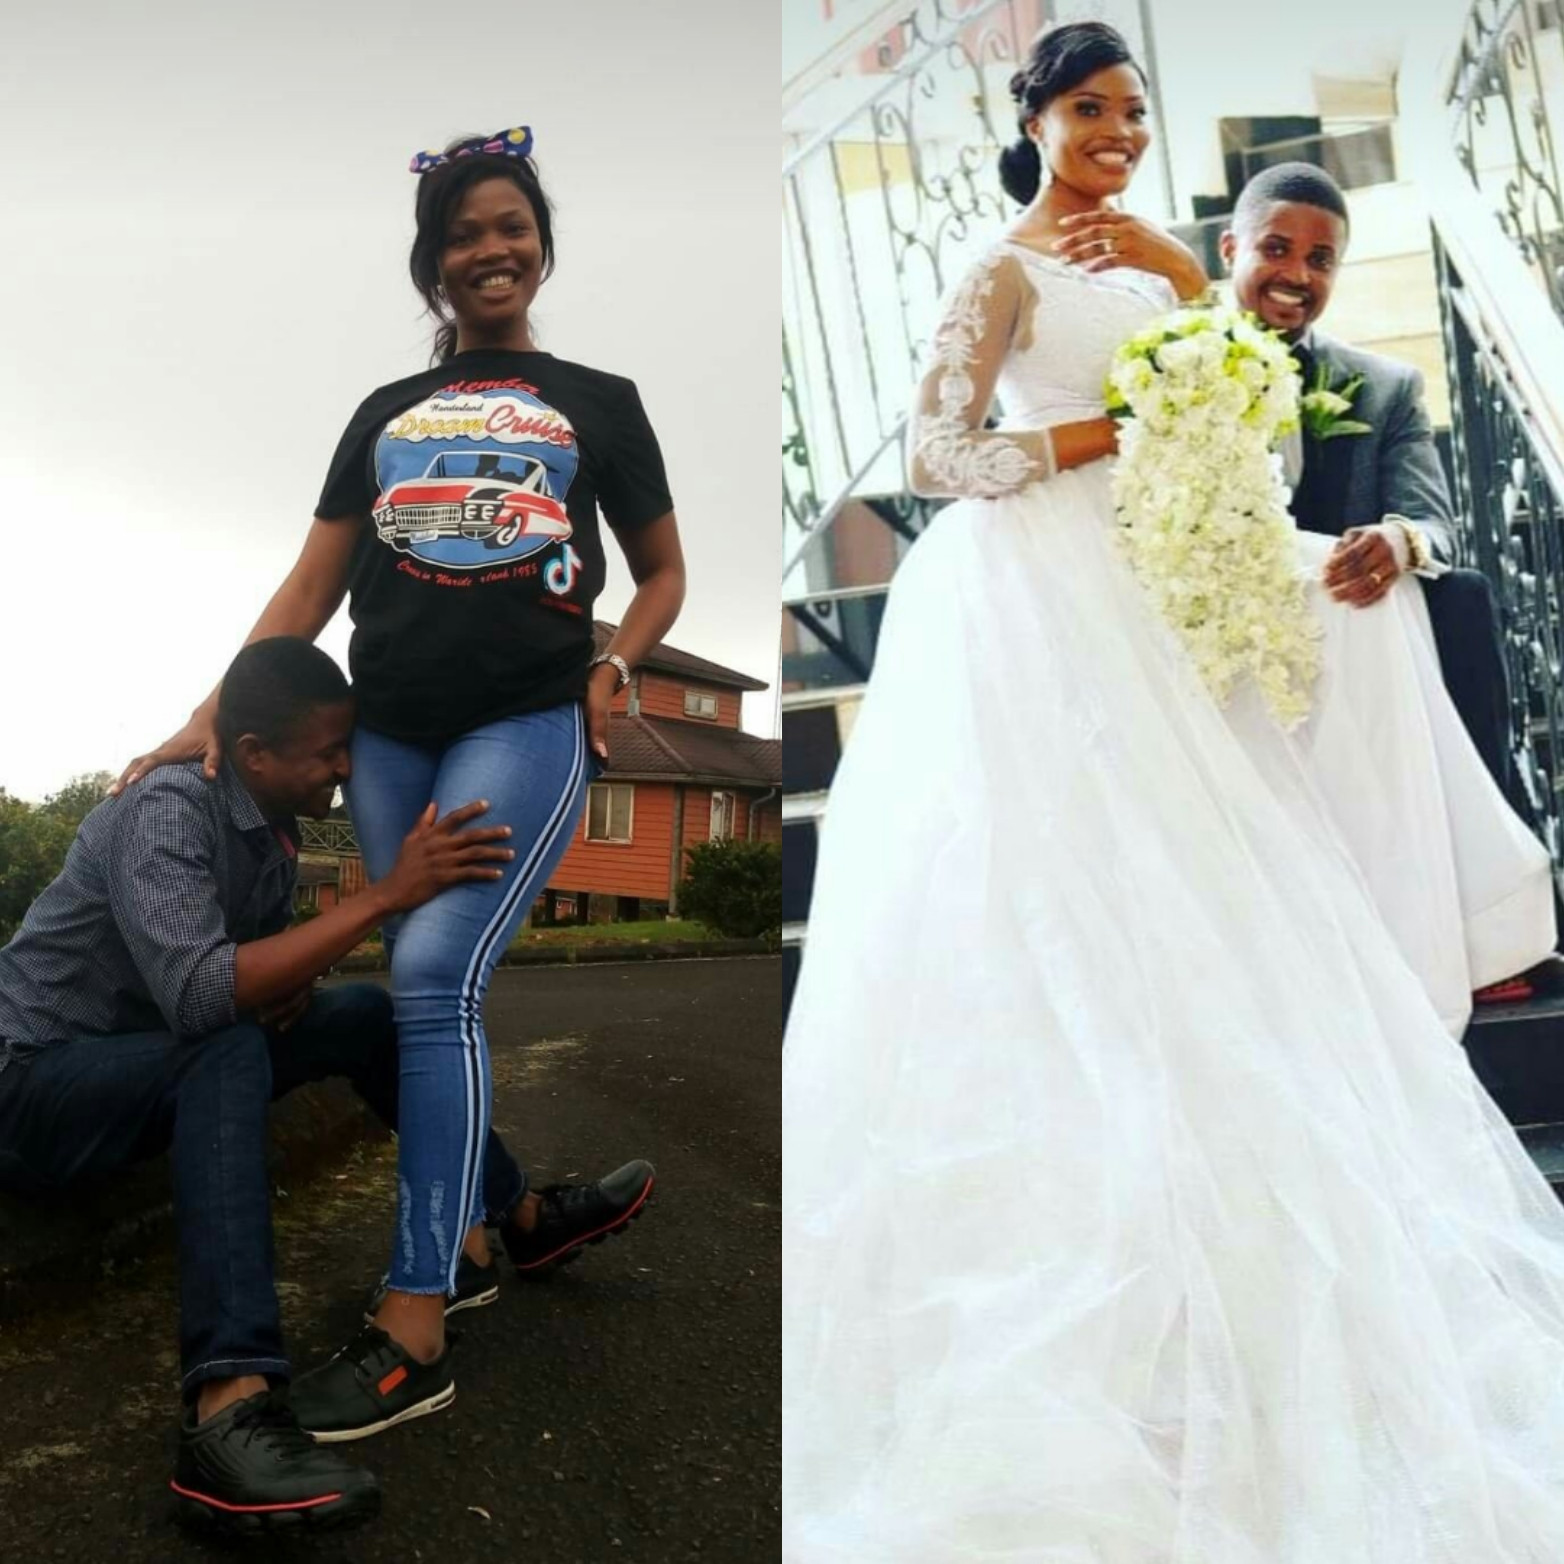 """61315832901a2 - """"JAMB lesson teacher turned hubby"""" Woman writes as she celebrates wedding anniversary with her former teacher"""